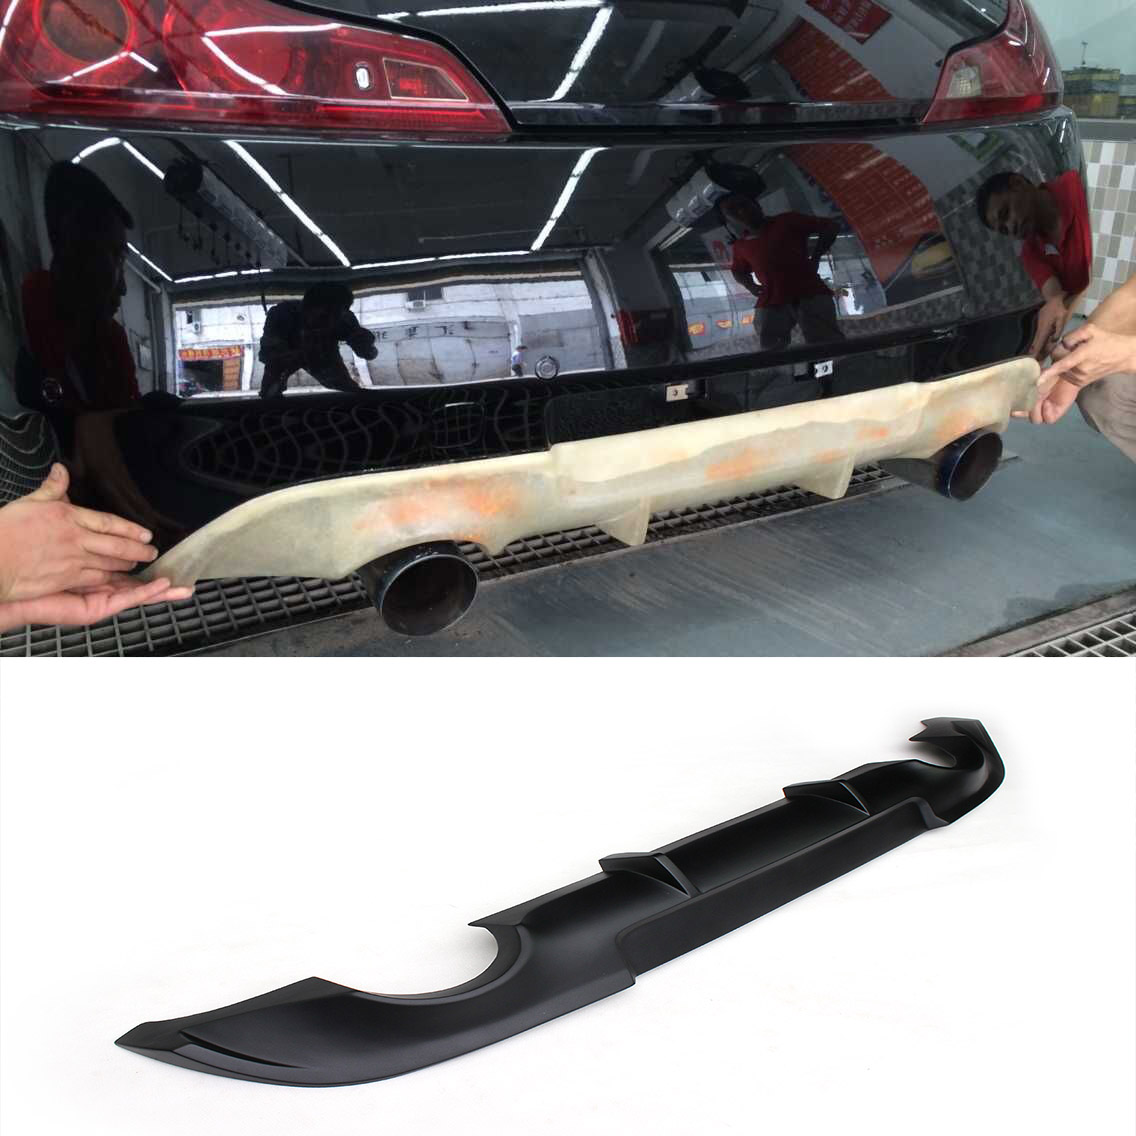 G37 FRP JC styling car rear spoiler diffuser for infiniti,auto rear diffuser fit for G37 2 door 2009-2013 (not fit USA market)(China (Mainland))